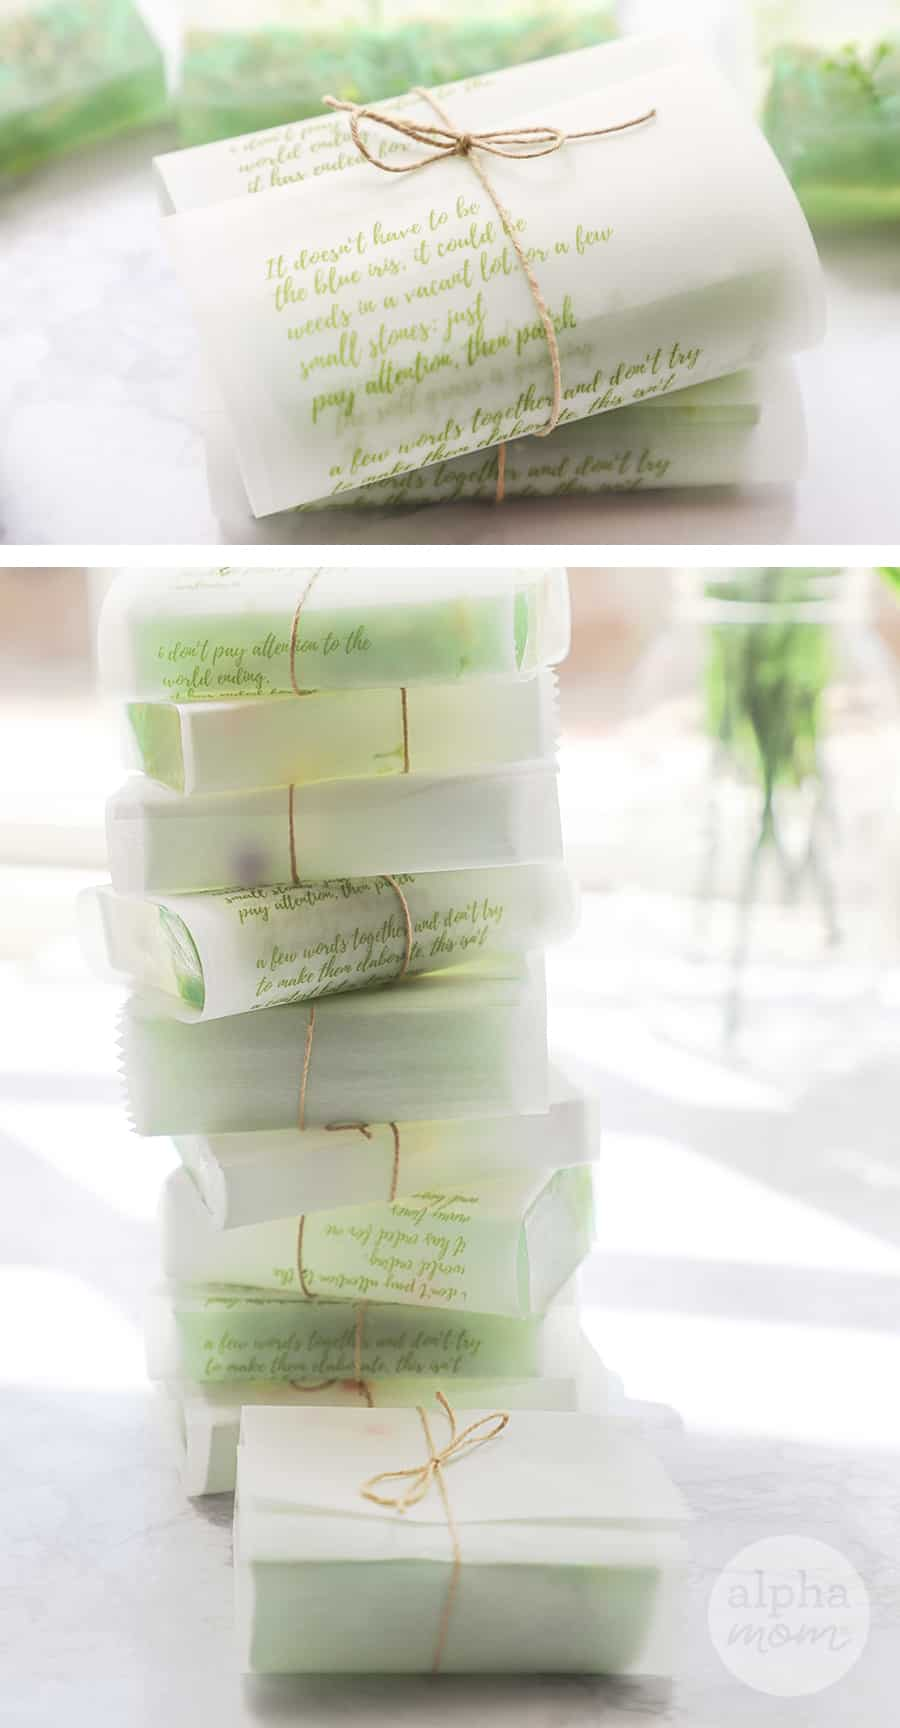 two close-up photos showing bars of homemade soap individually wrapped in parchment paper printed with poems and wrapped in twine